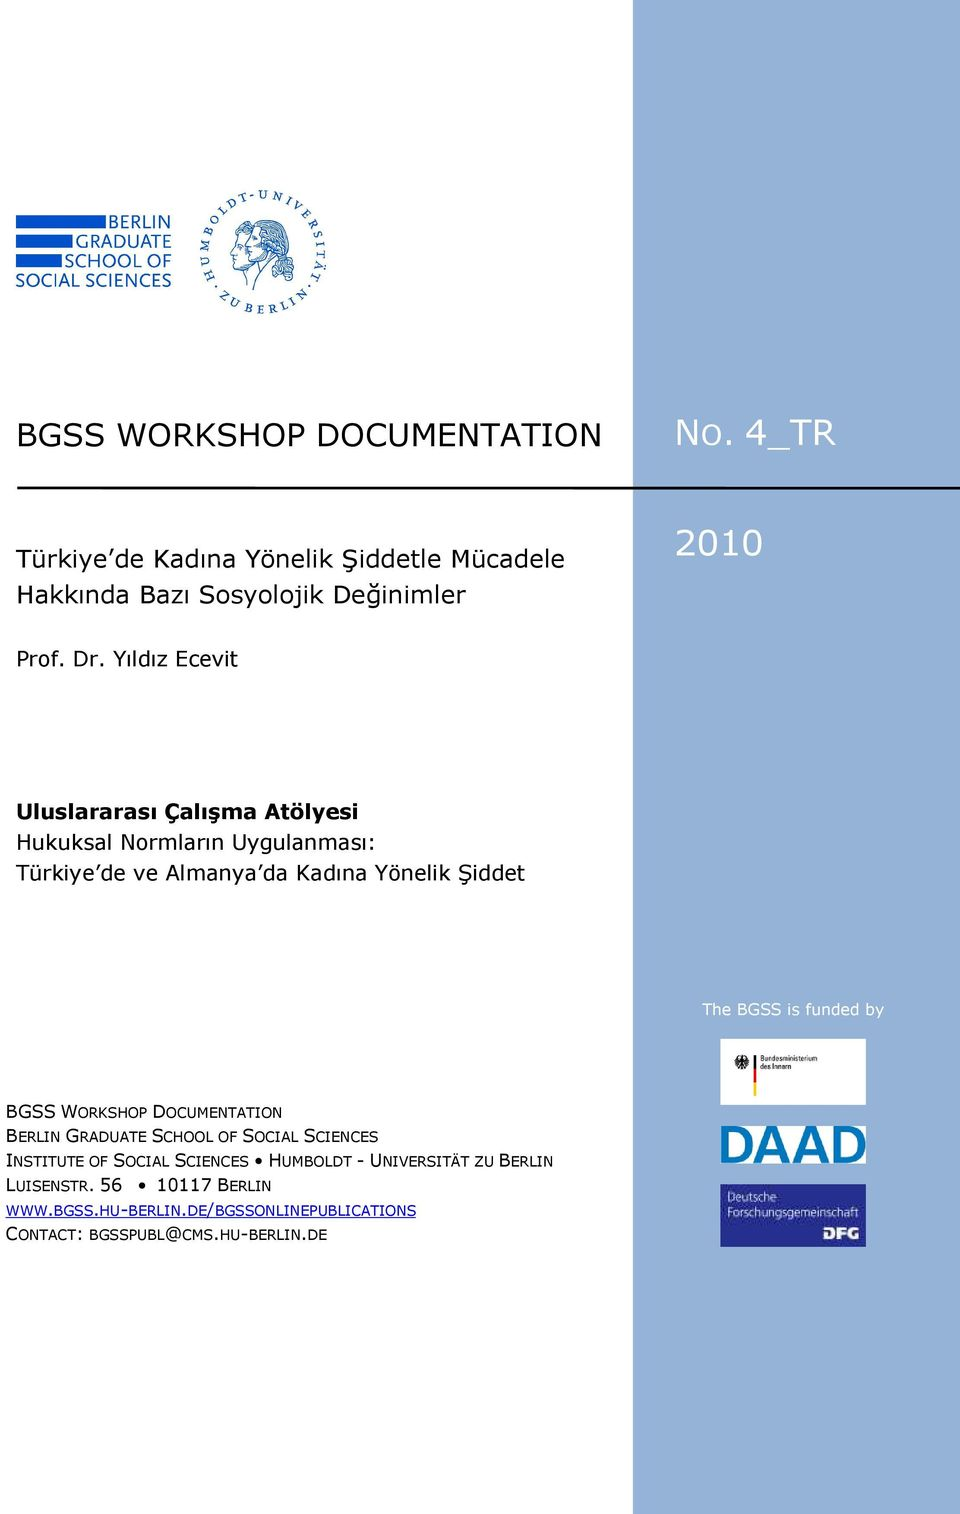 funded by BGSS WORKSHOP DOCUMENTATION BERLIN GRADUATE SCHOOL OF SOCIAL SCIENCES INSTITUTE OF SOCIAL SCIENCES HUMBOLDT - UNIVERSITÄT ZU